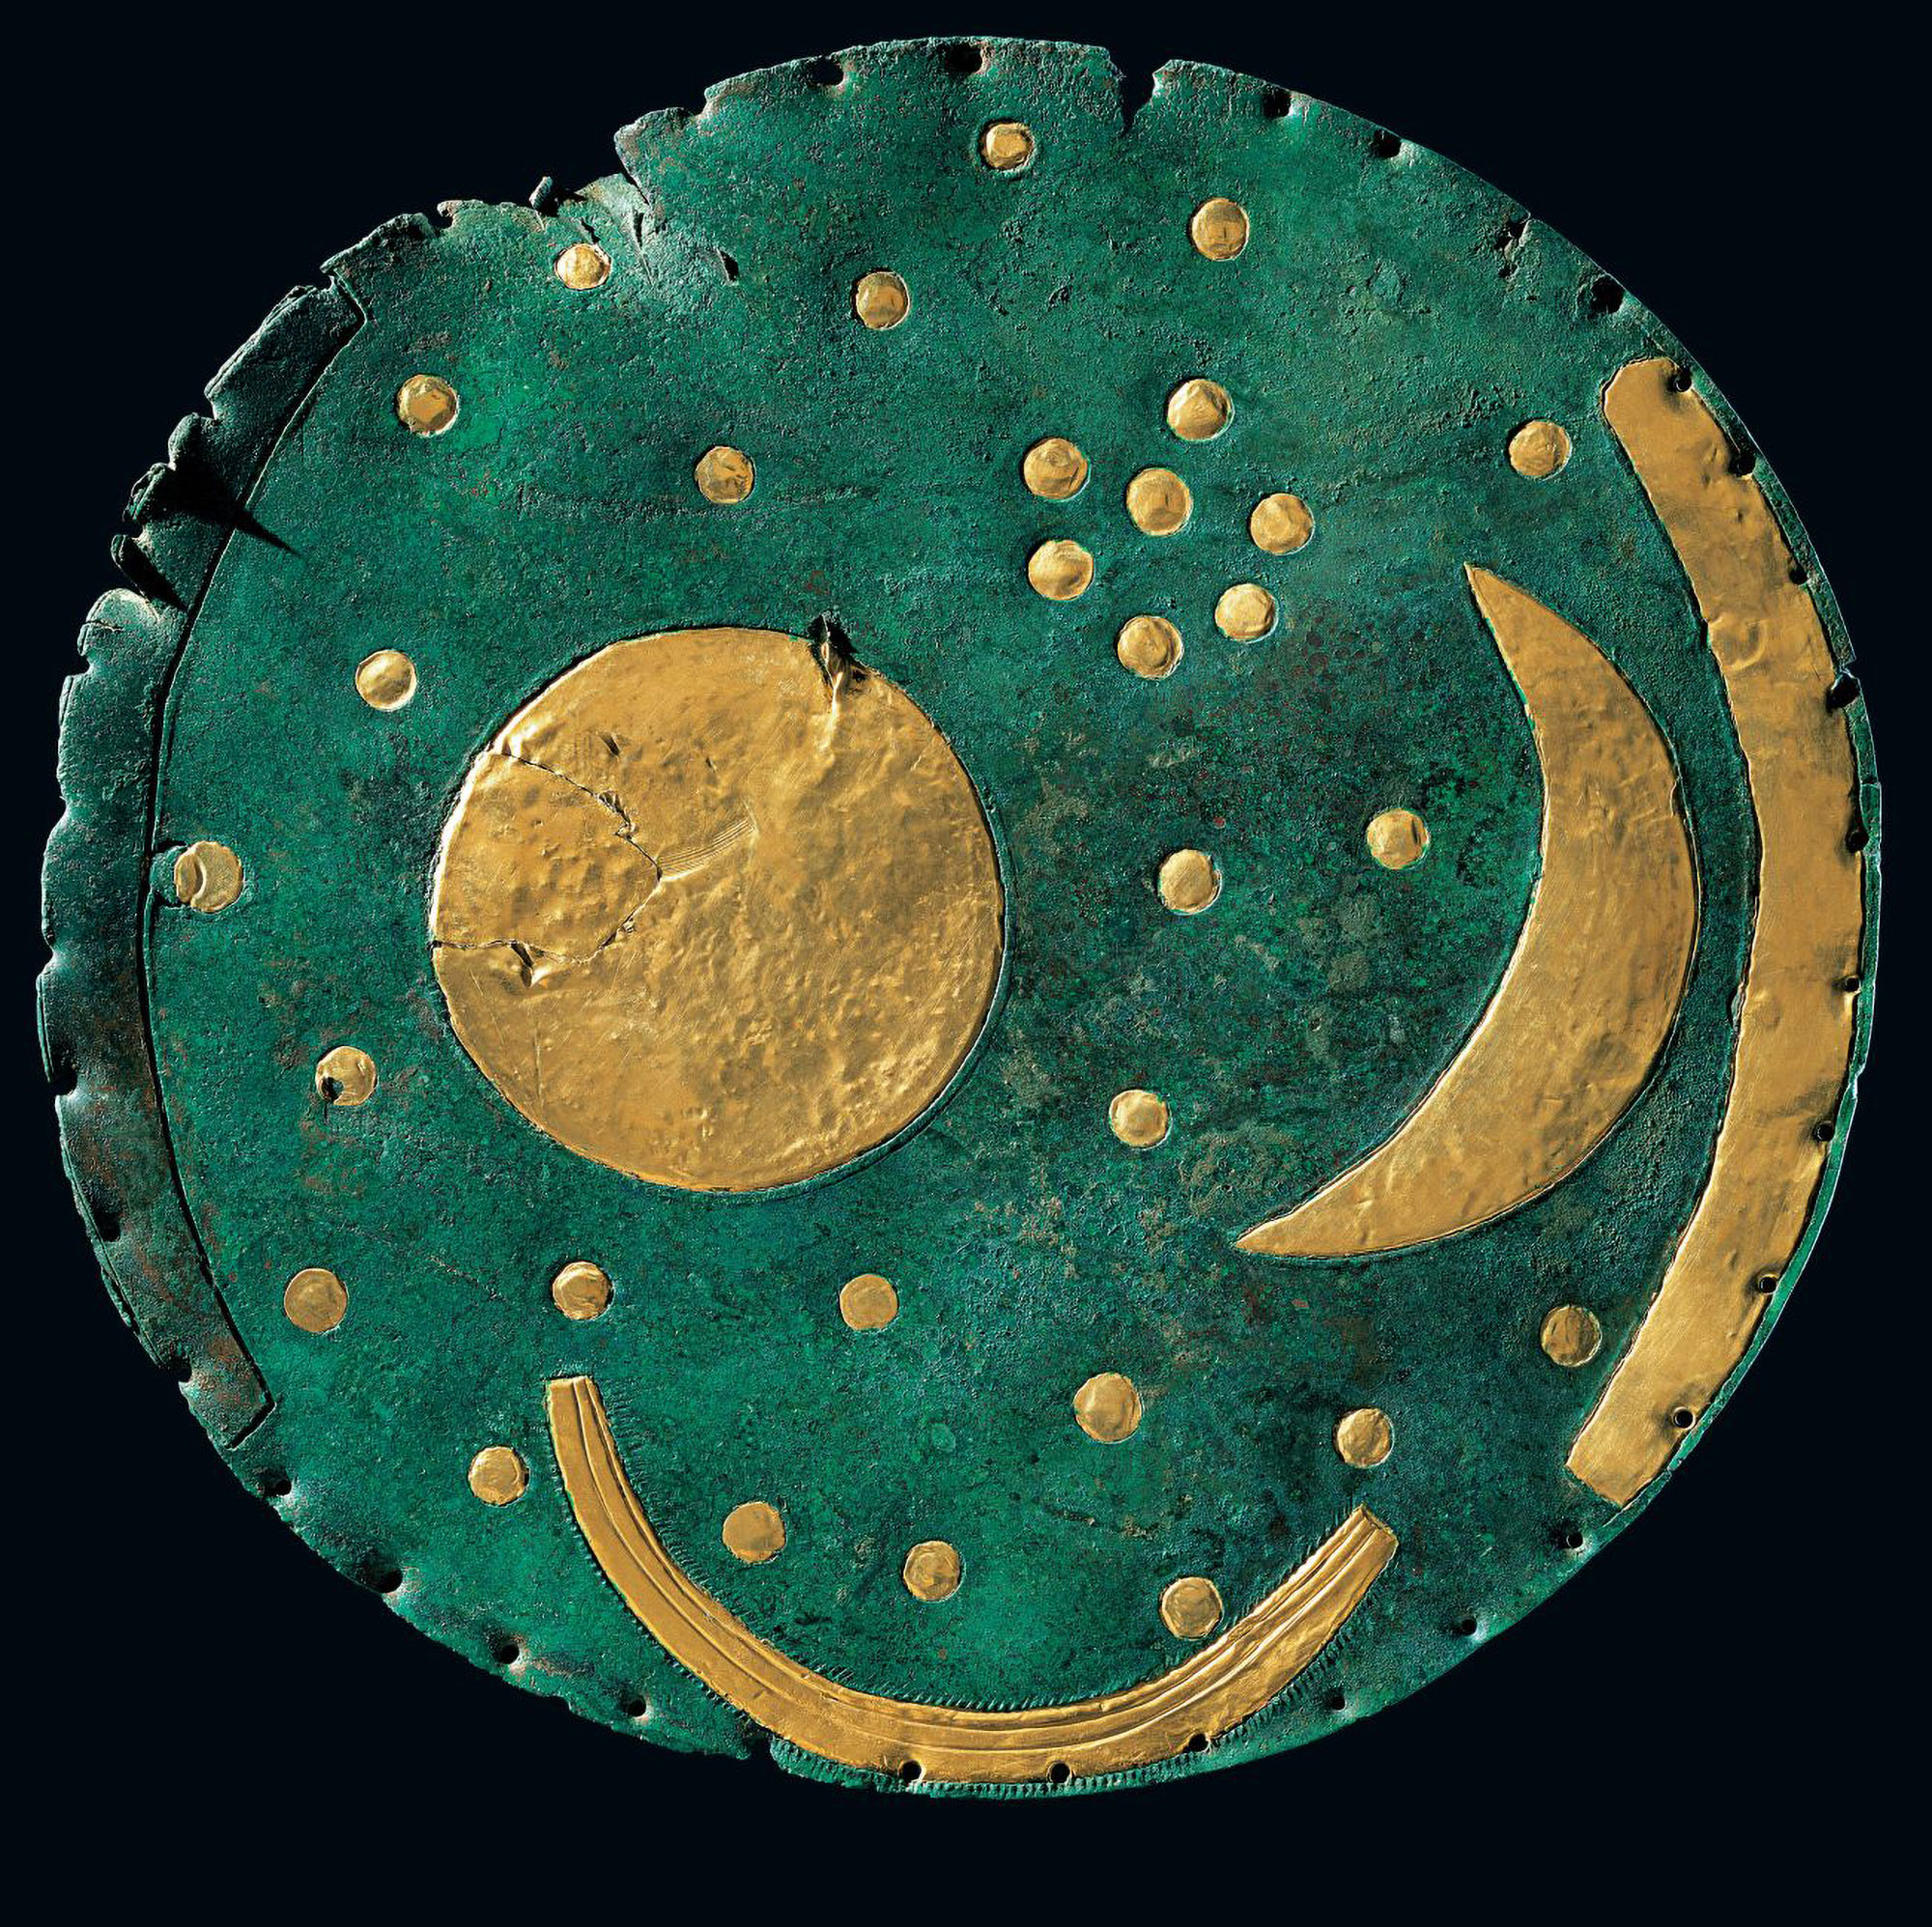 Famous Astronomical Clock From Bronze Age To Go On Display In London